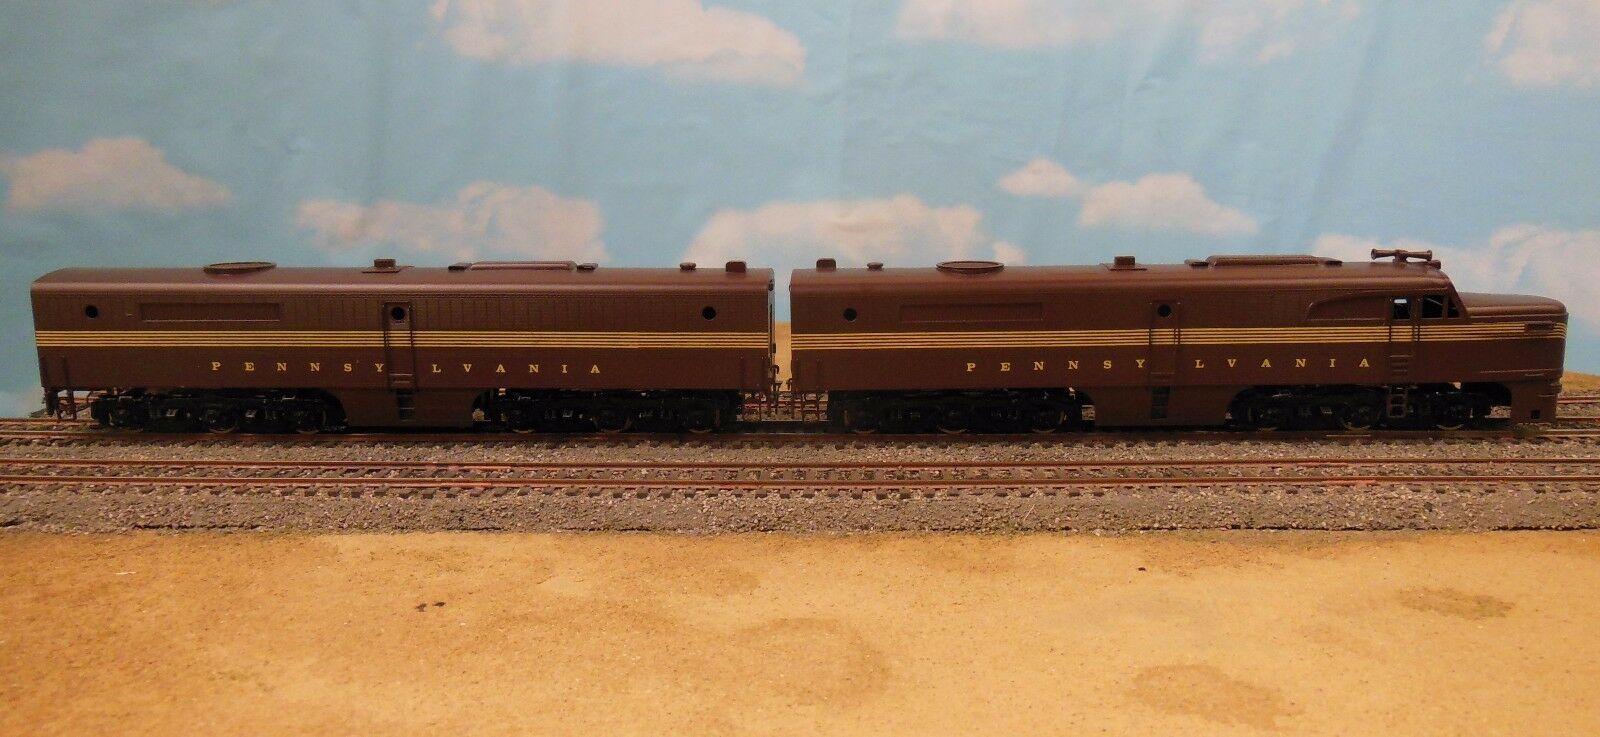 HO SCALE BRASS WESTSIDE MODEL CO ALCO  PENNSY  PA LOCOMOTIVE SET PAINTED